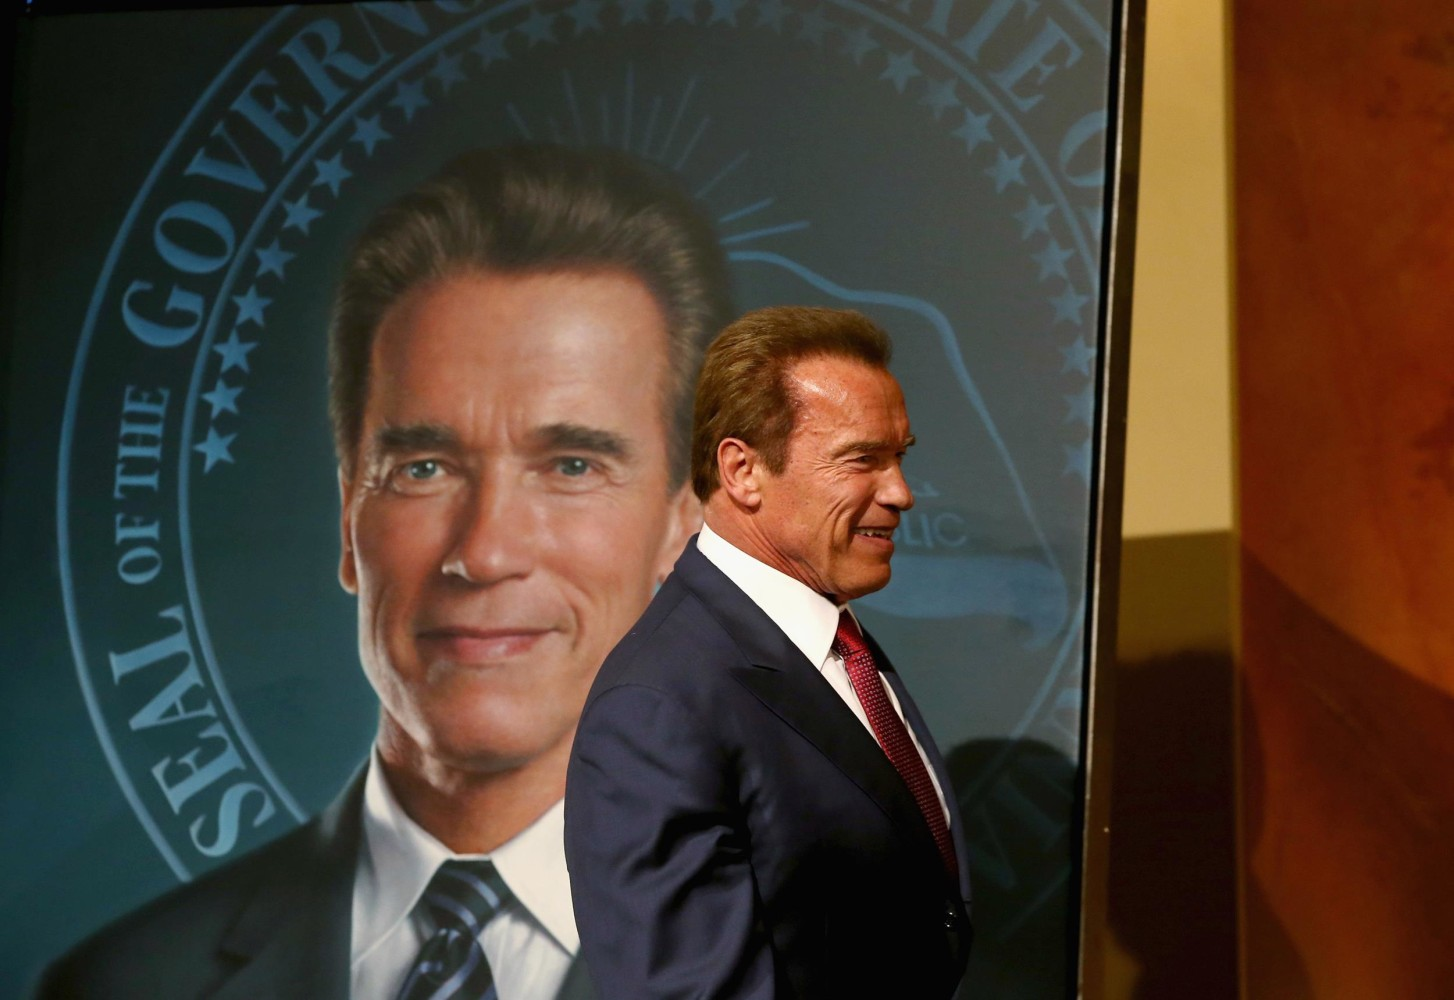 arnold schwarzenegger celebrity to politician essay Arnold schwarzenegger and maria shriver's official divorce proceedings have begun in an la court - the couple were married for 25 years photograph: jason merritt/filmmagic former california governor arnold schwarzenegger and his wife maria shriver are to divorce after papers.